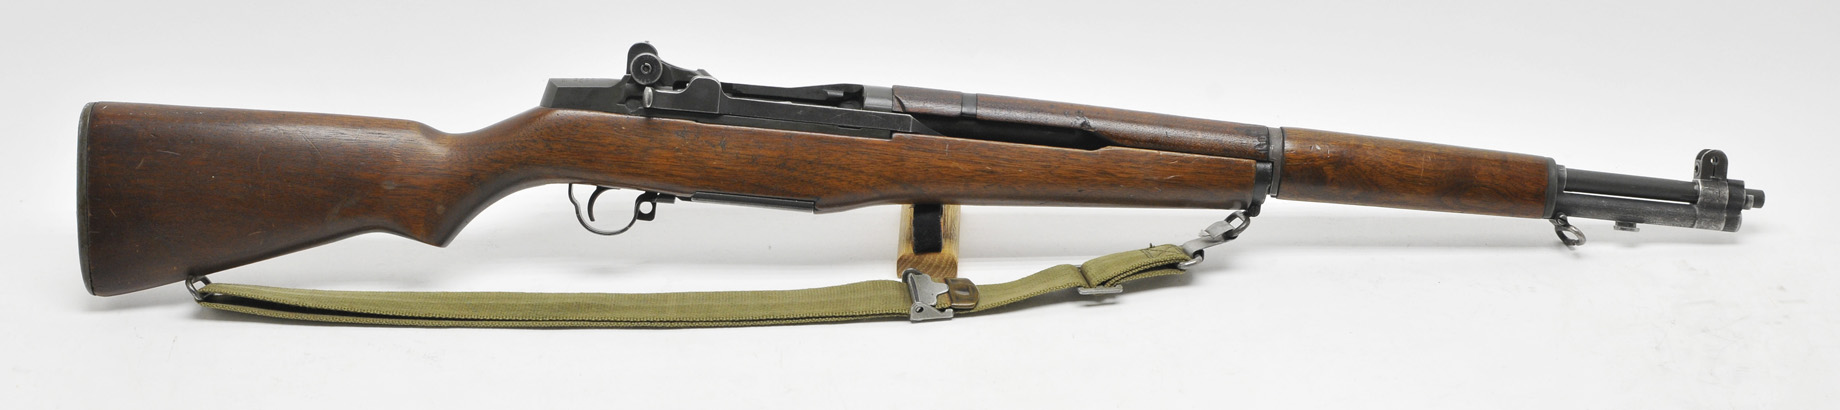 m1 garand custom shop inc